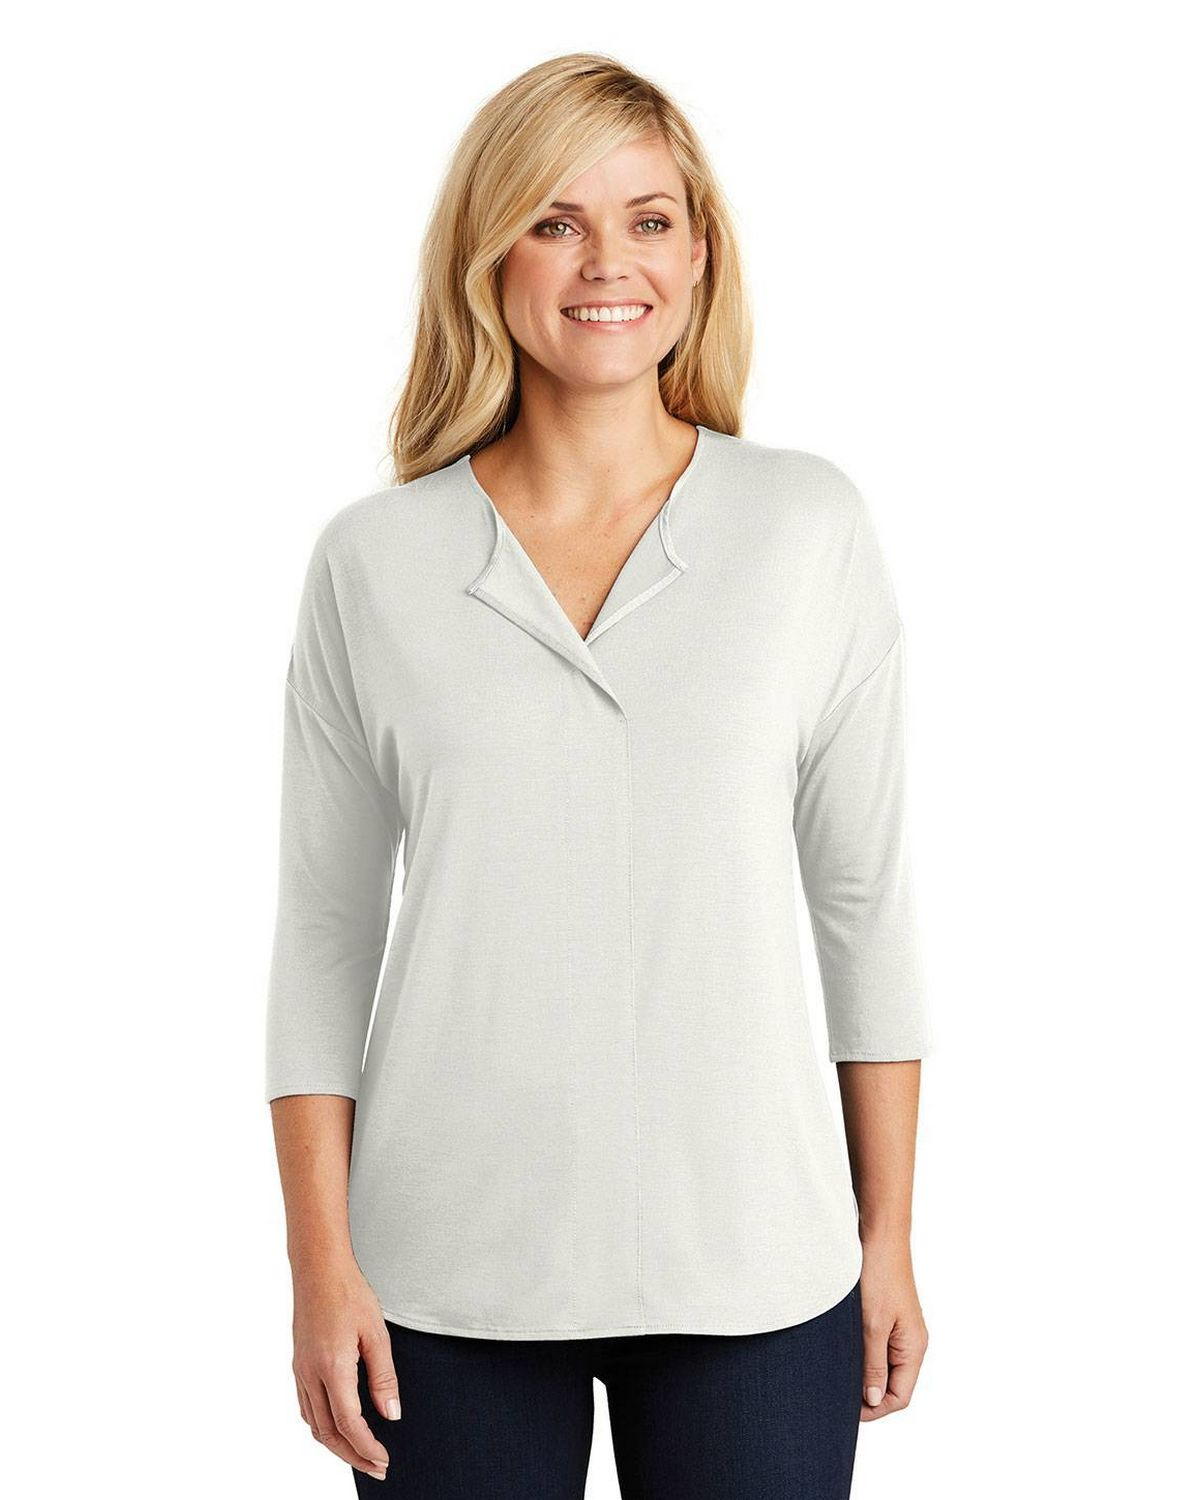 Port Authority LK5433 Ladies Concept 3/4 Sleeve Soft Split Neck Top